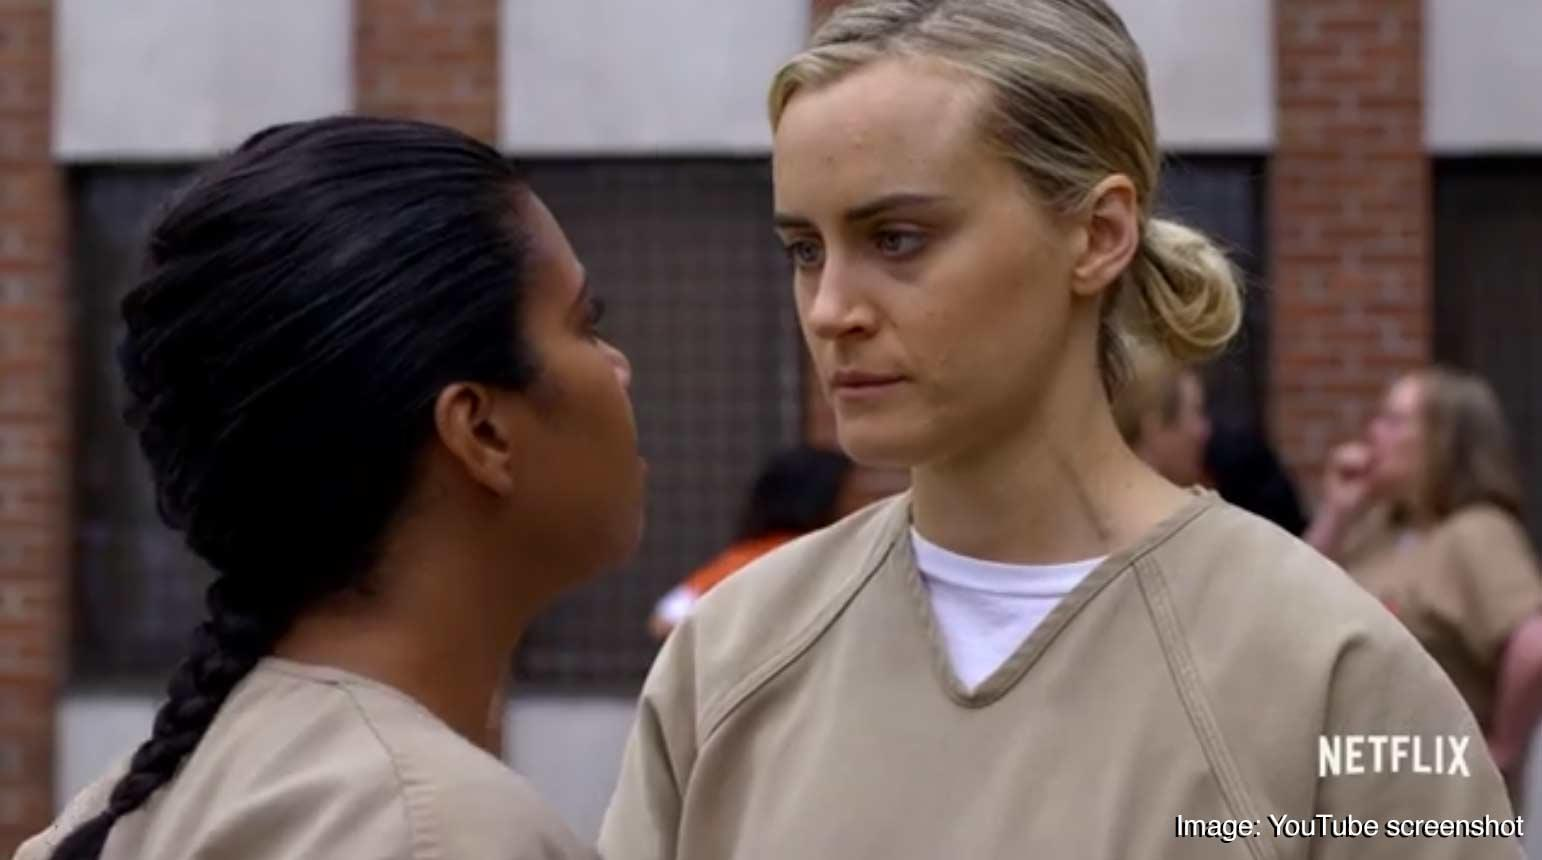 Watch: 'Orange is the New Black' Season 4 Official Trailer